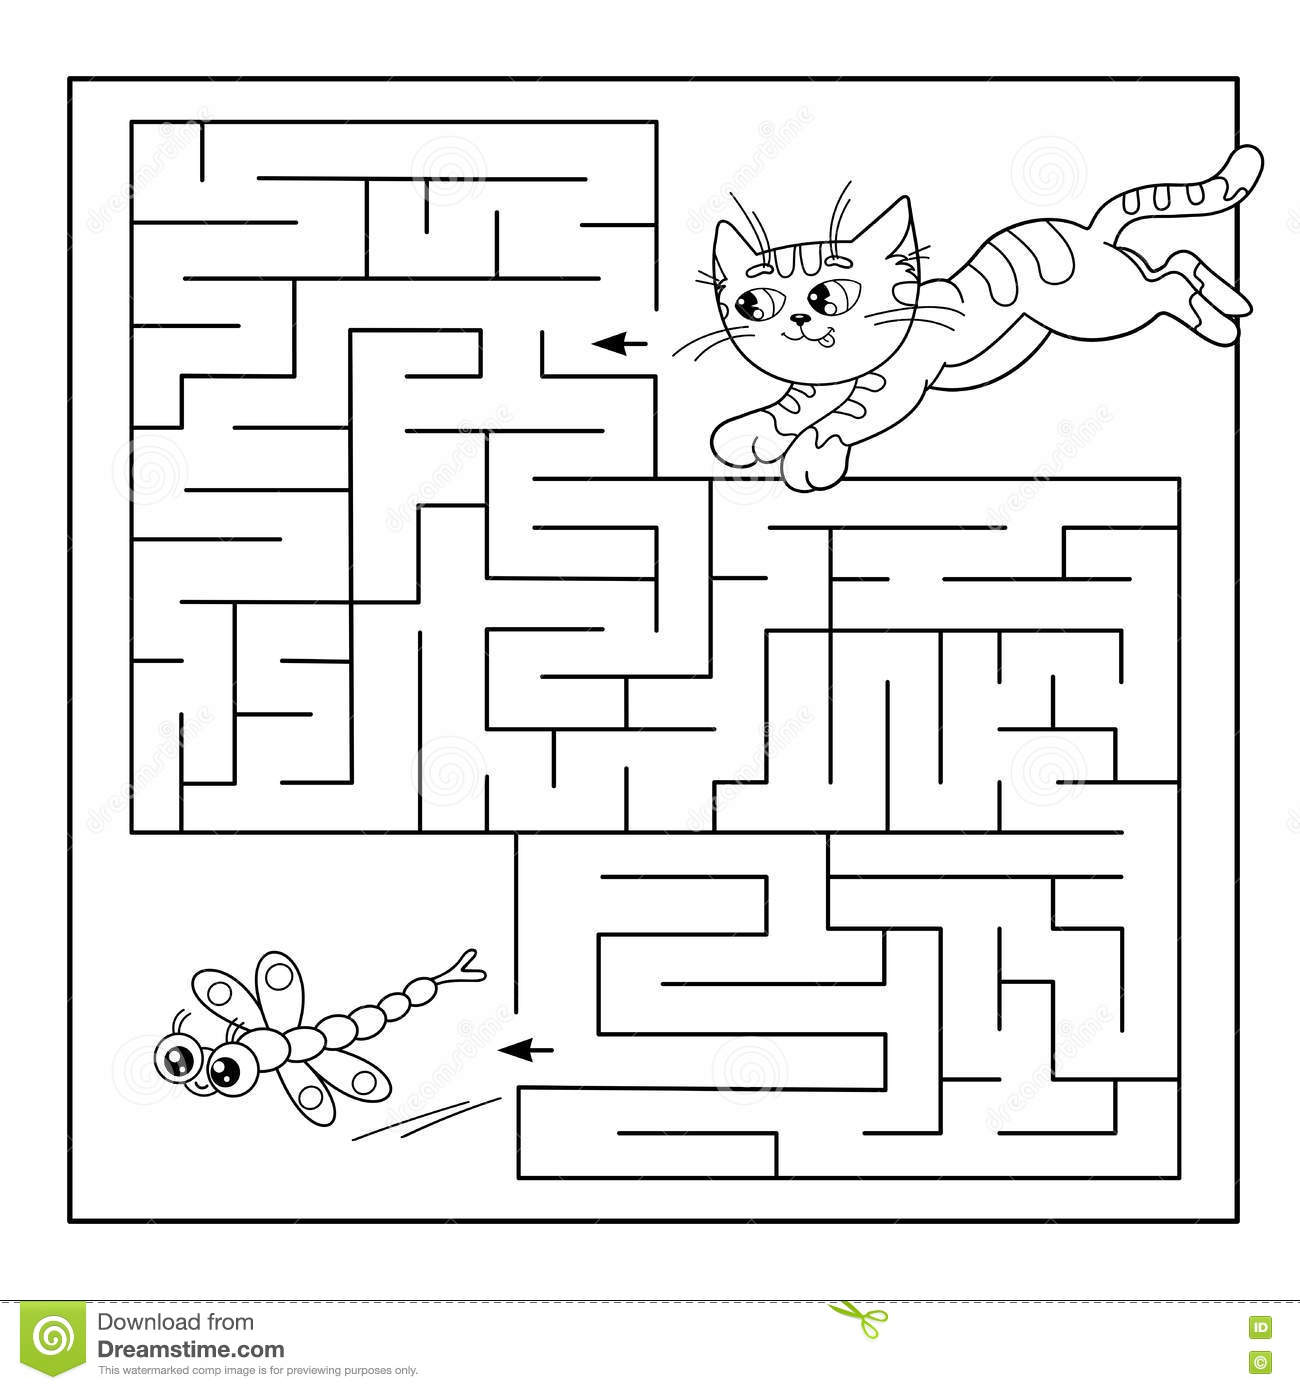 Vase Preschool Maze Worksheet